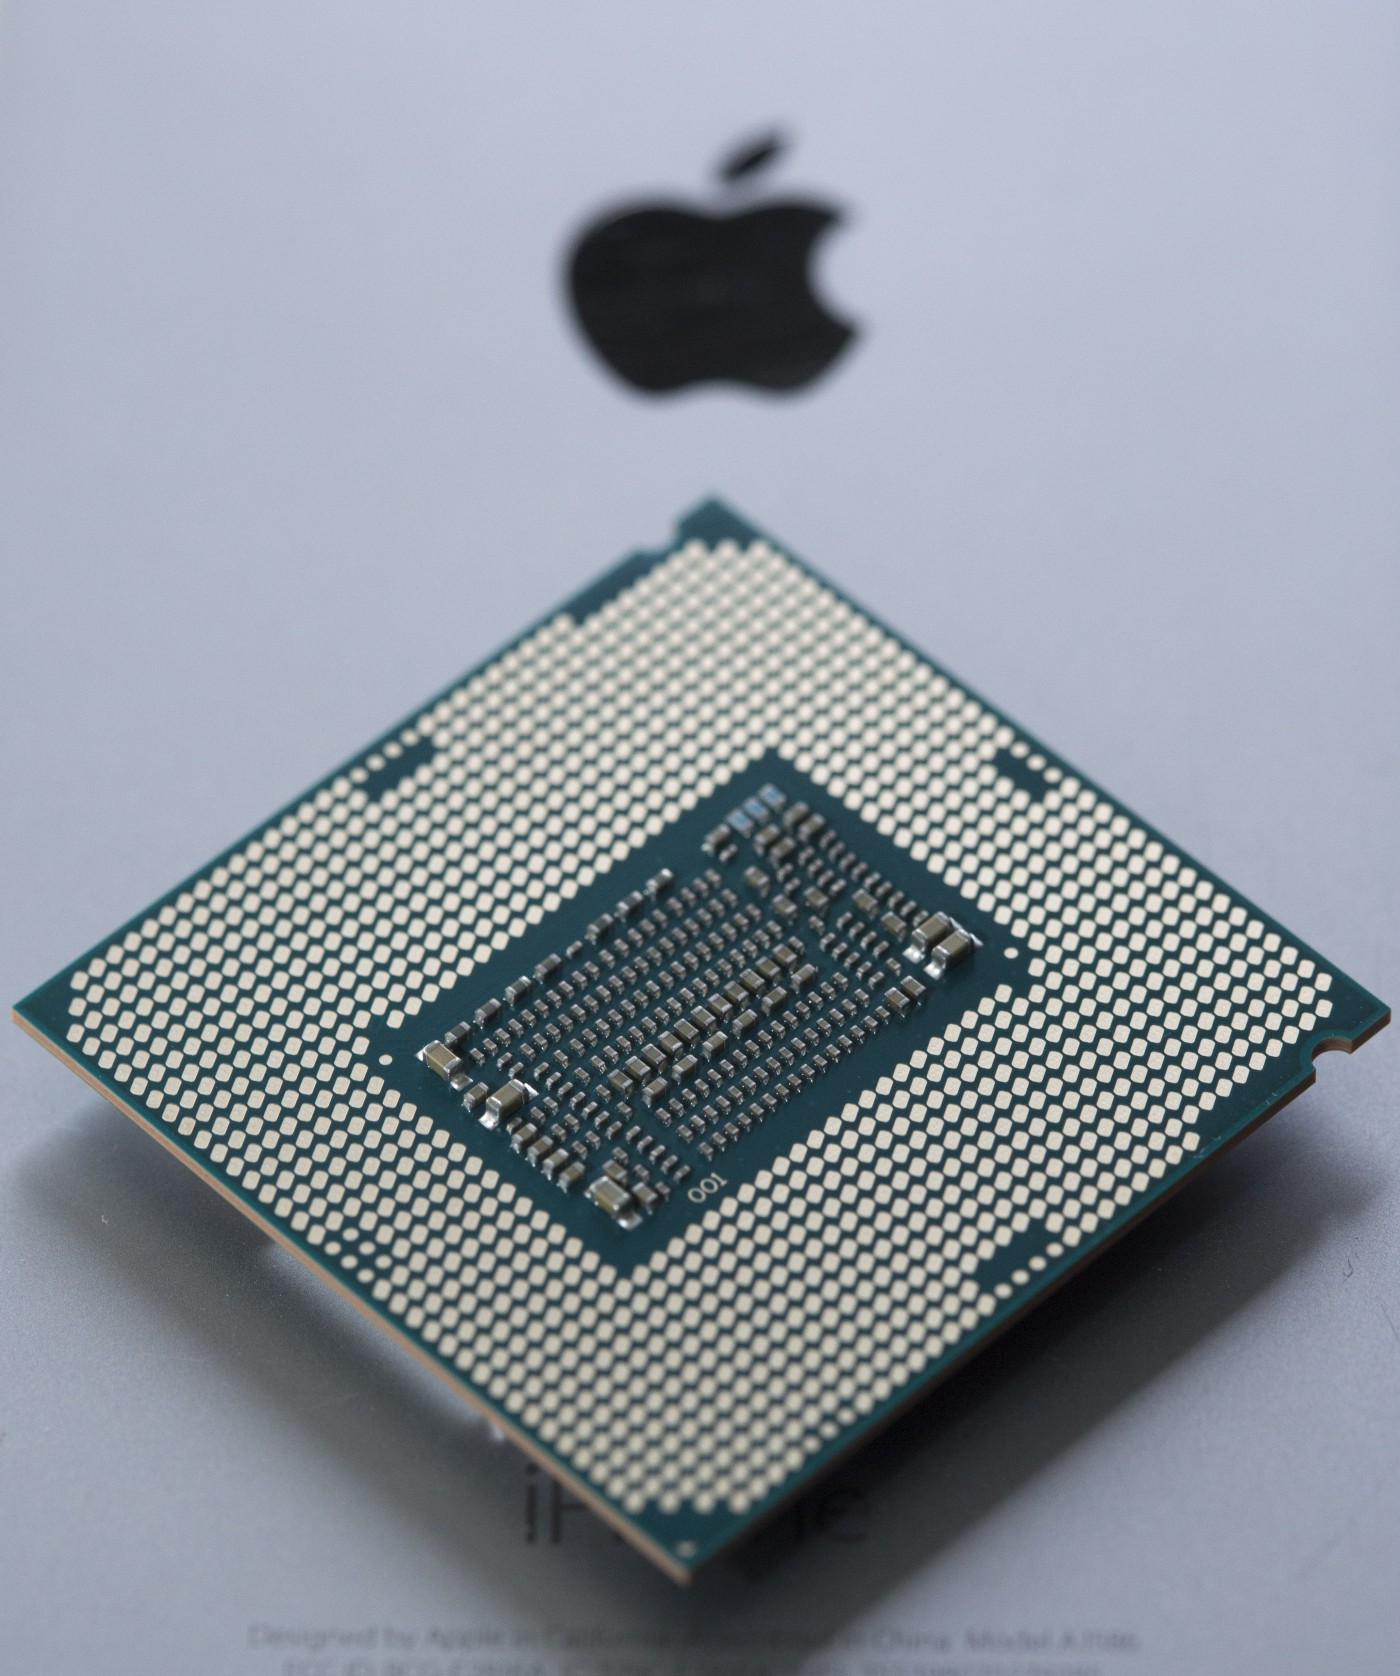 An Intel Core i7 processor on top of a closed Apple laptop with the logo visible.